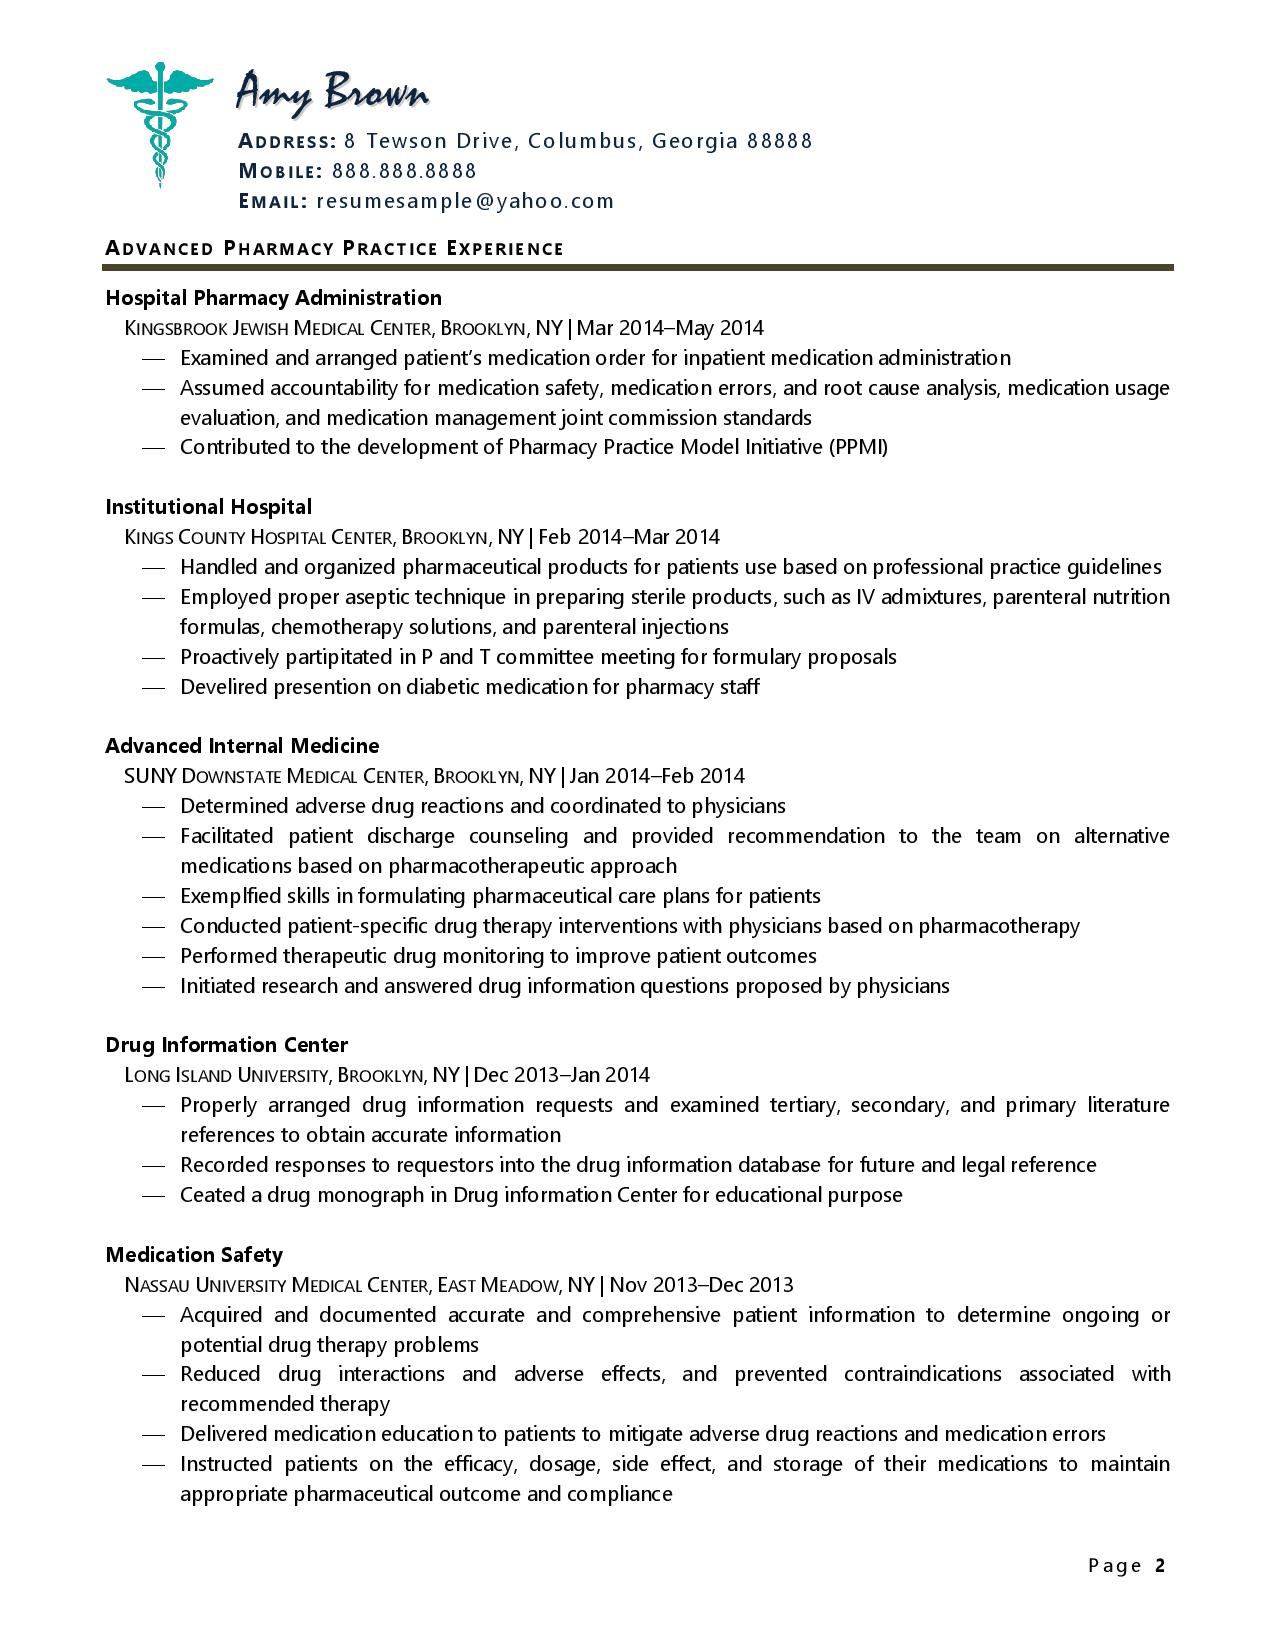 Page two of one of pharmacist resume examples